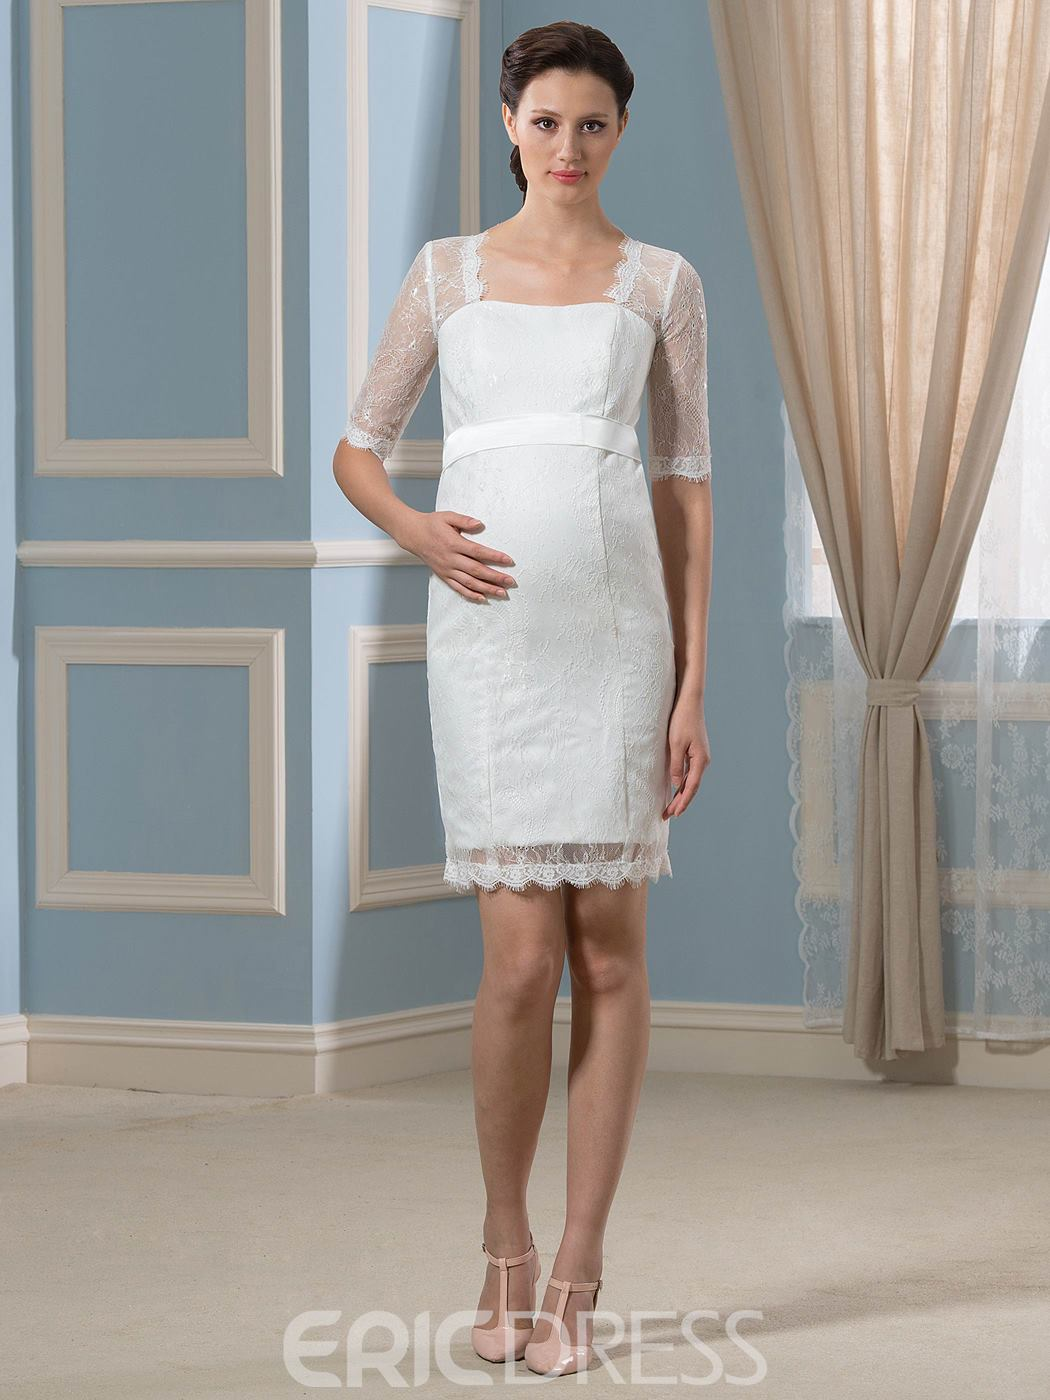 Ericdress Pretty Square Neckline Half Sleeves Lace Short Maternity Wedding Dress